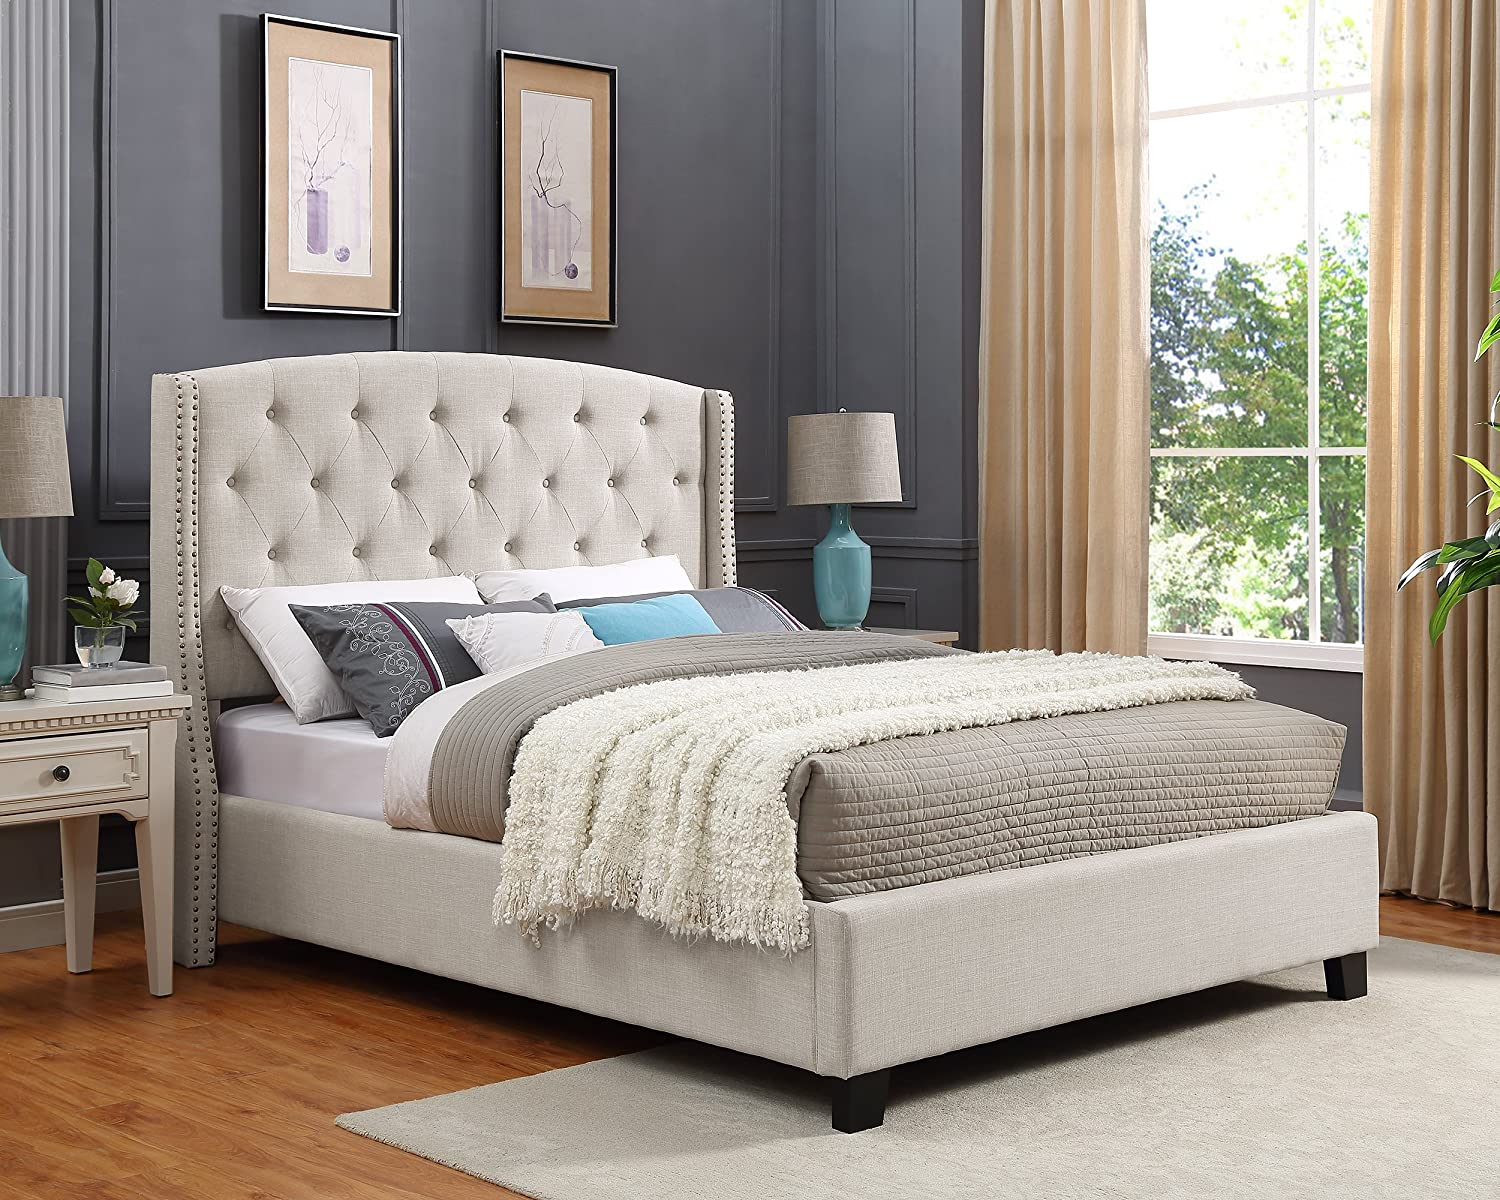 Roundhill Furniture Nantarre Fabric Tufted Wingback Upholstered Bed with Nailhead Trim, Queen, Tan